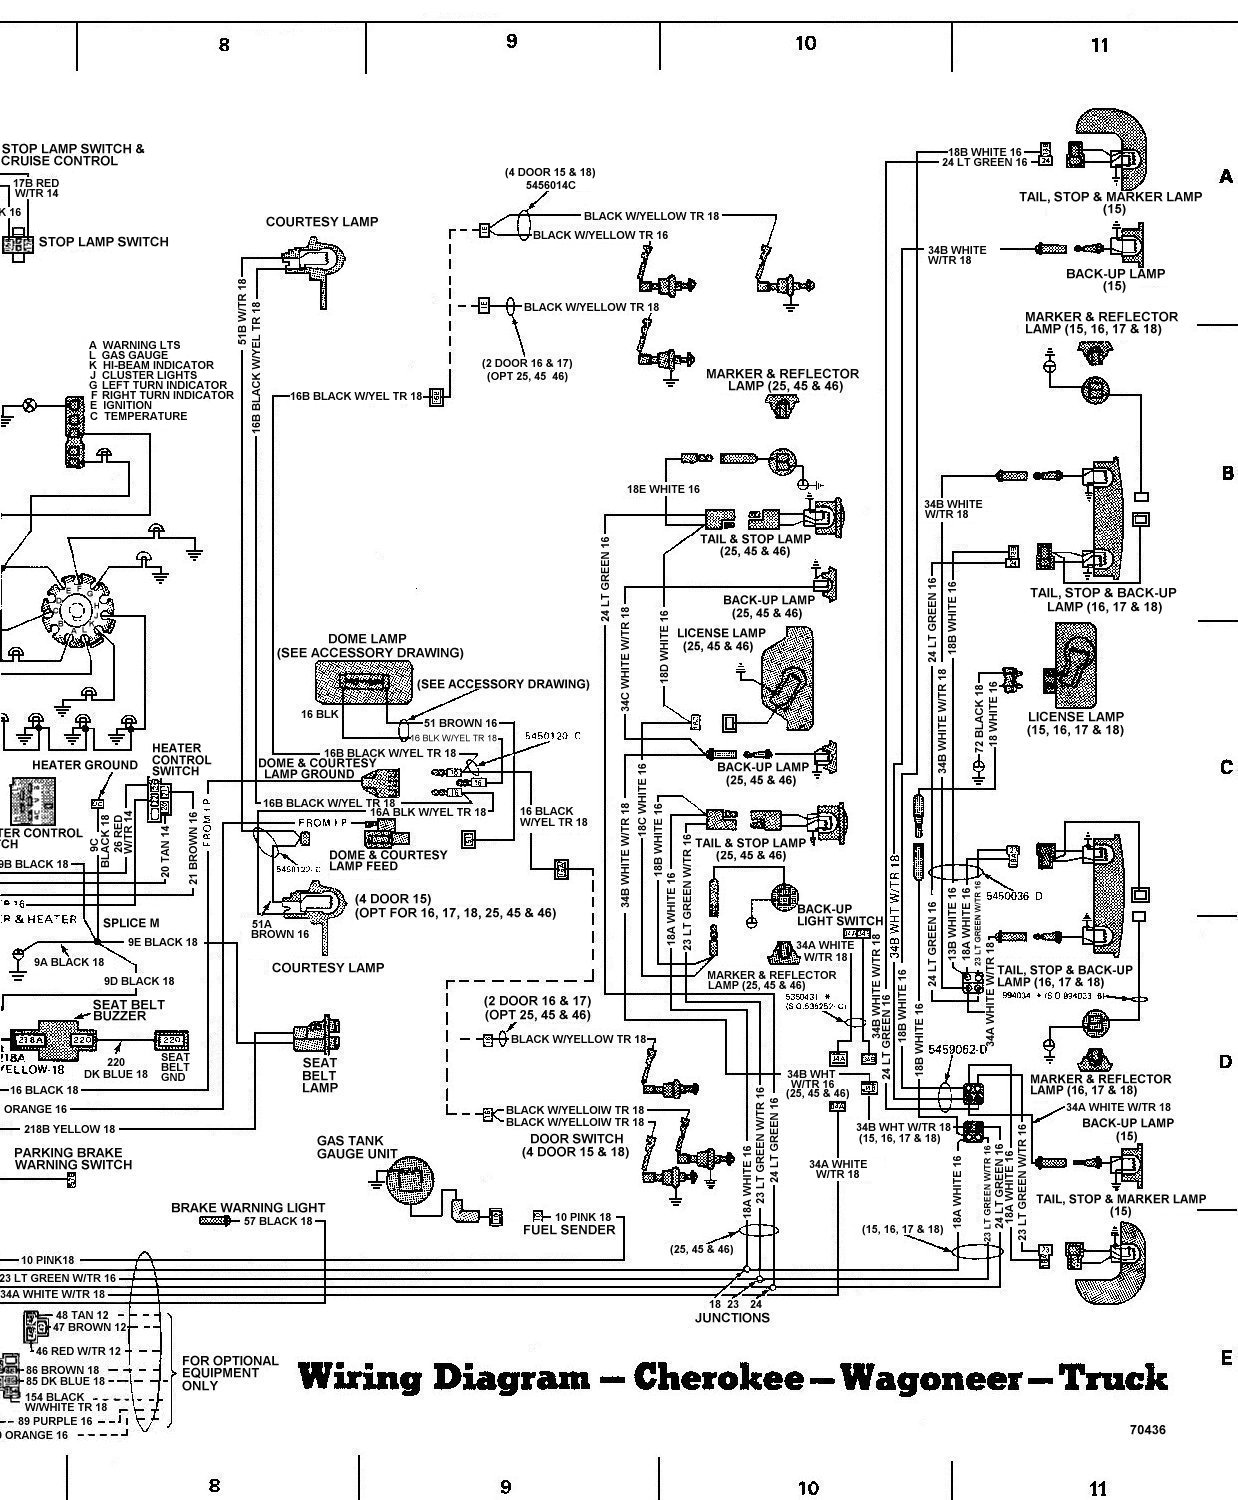 1990 Jeep Yj Wiring Diagram / Jeepy 90 Yj Wiring Diagram